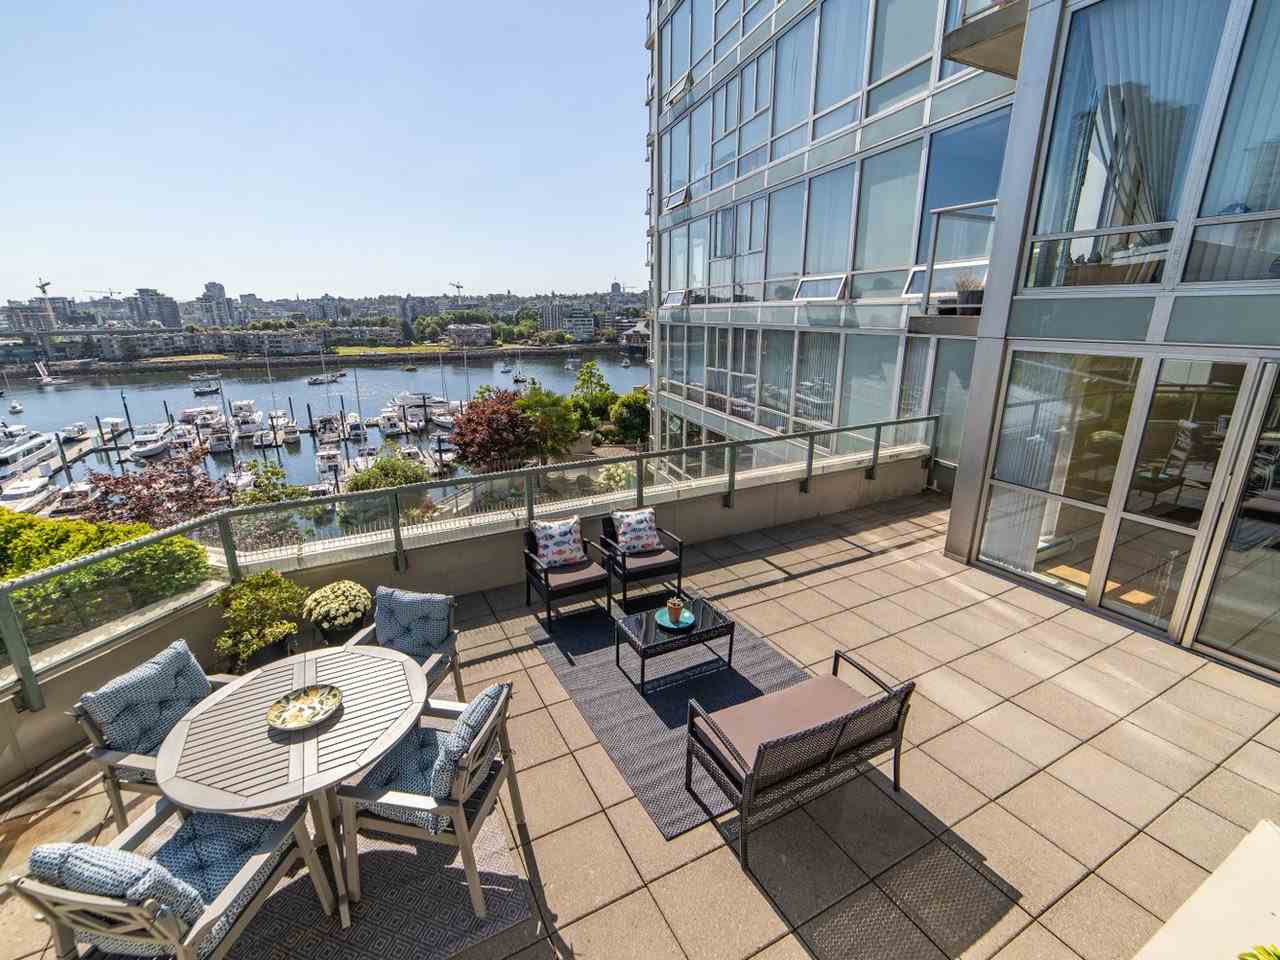 806 1228 MARINASIDE CRESCENT - Yaletown Apartment/Condo for sale, 3 Bedrooms (R2488849) - #1